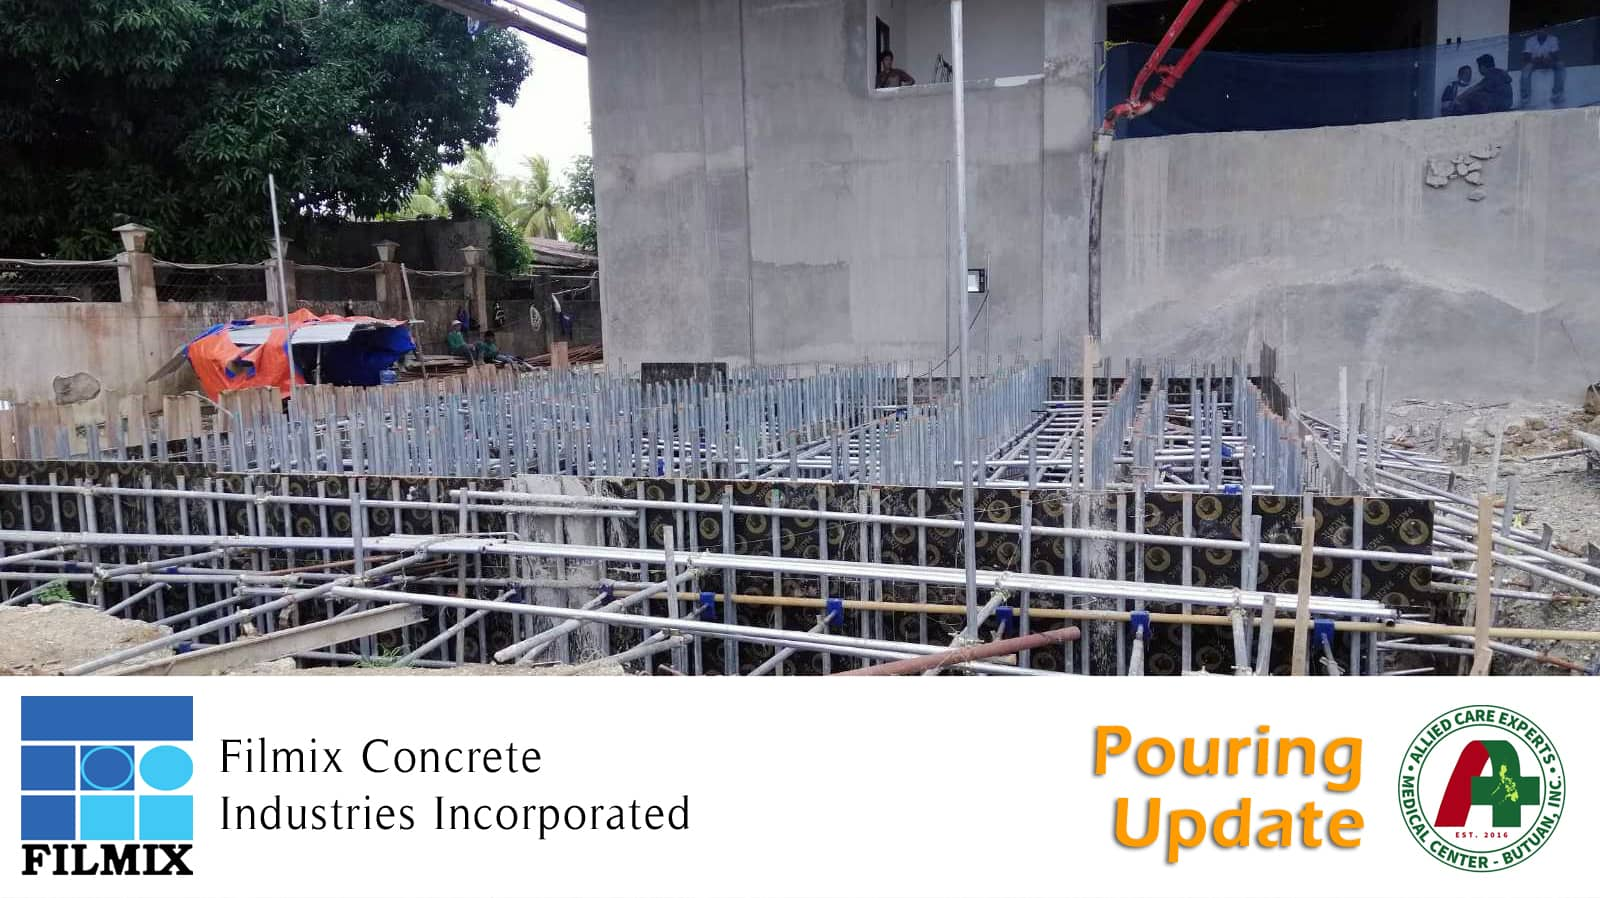 Ready mix concrete pouring update for ACE Medical Center Butuan City